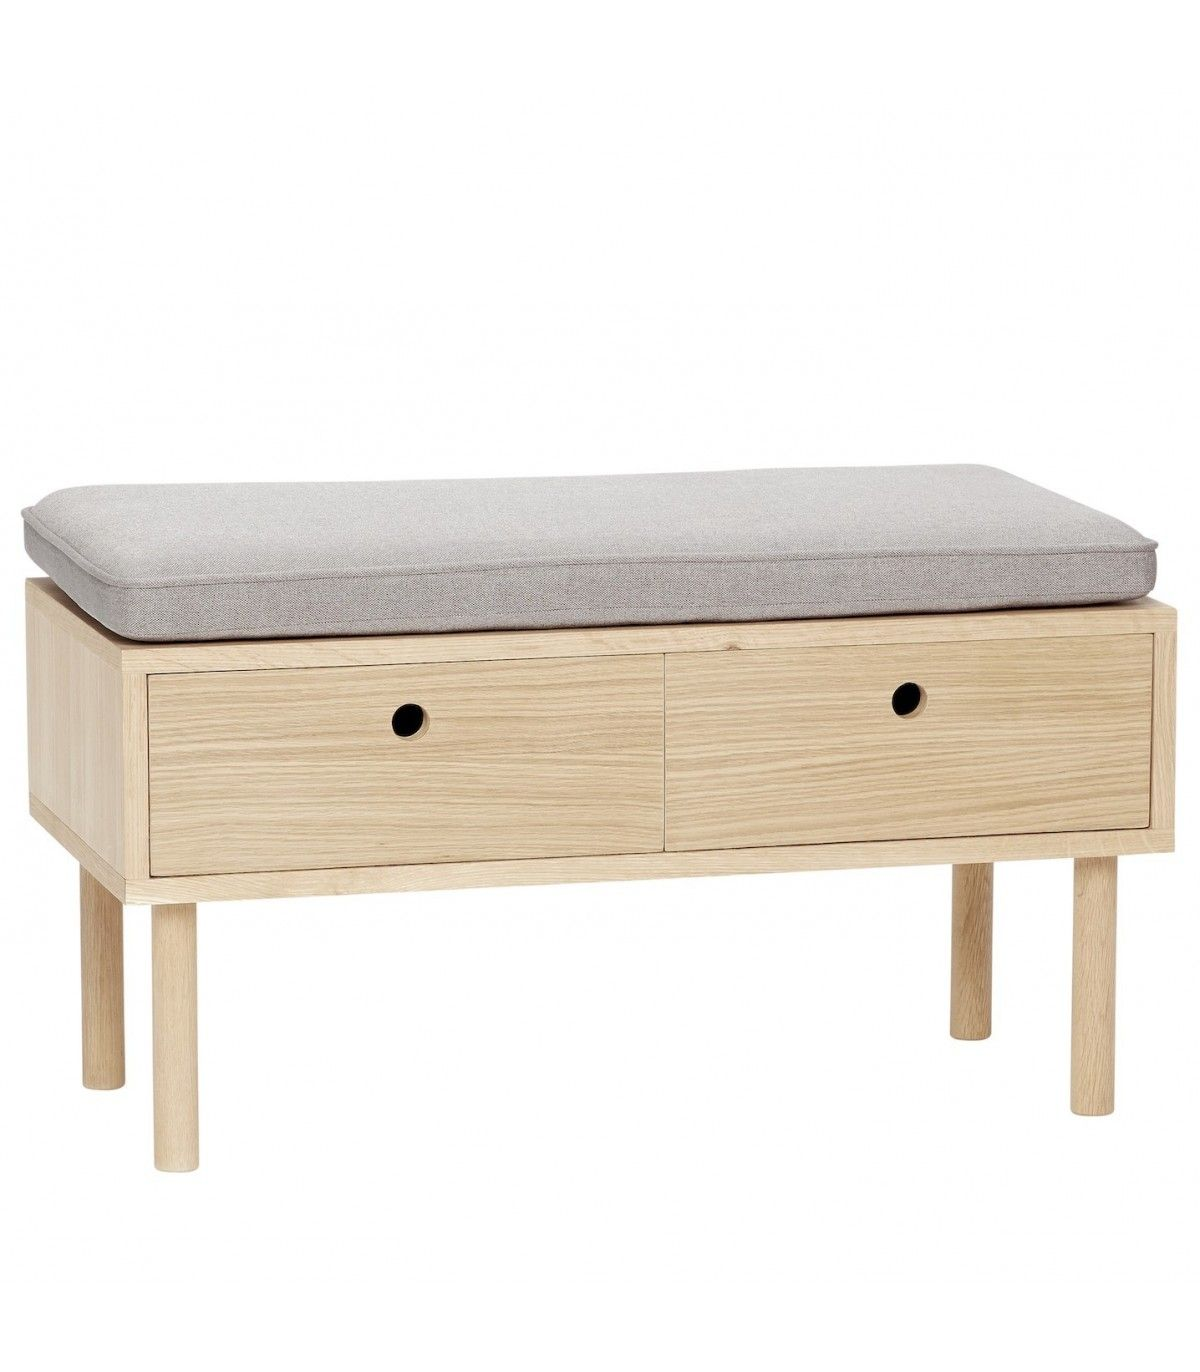 Bench With Drawers Hubsch Baxendalesecret Pinterest Bench